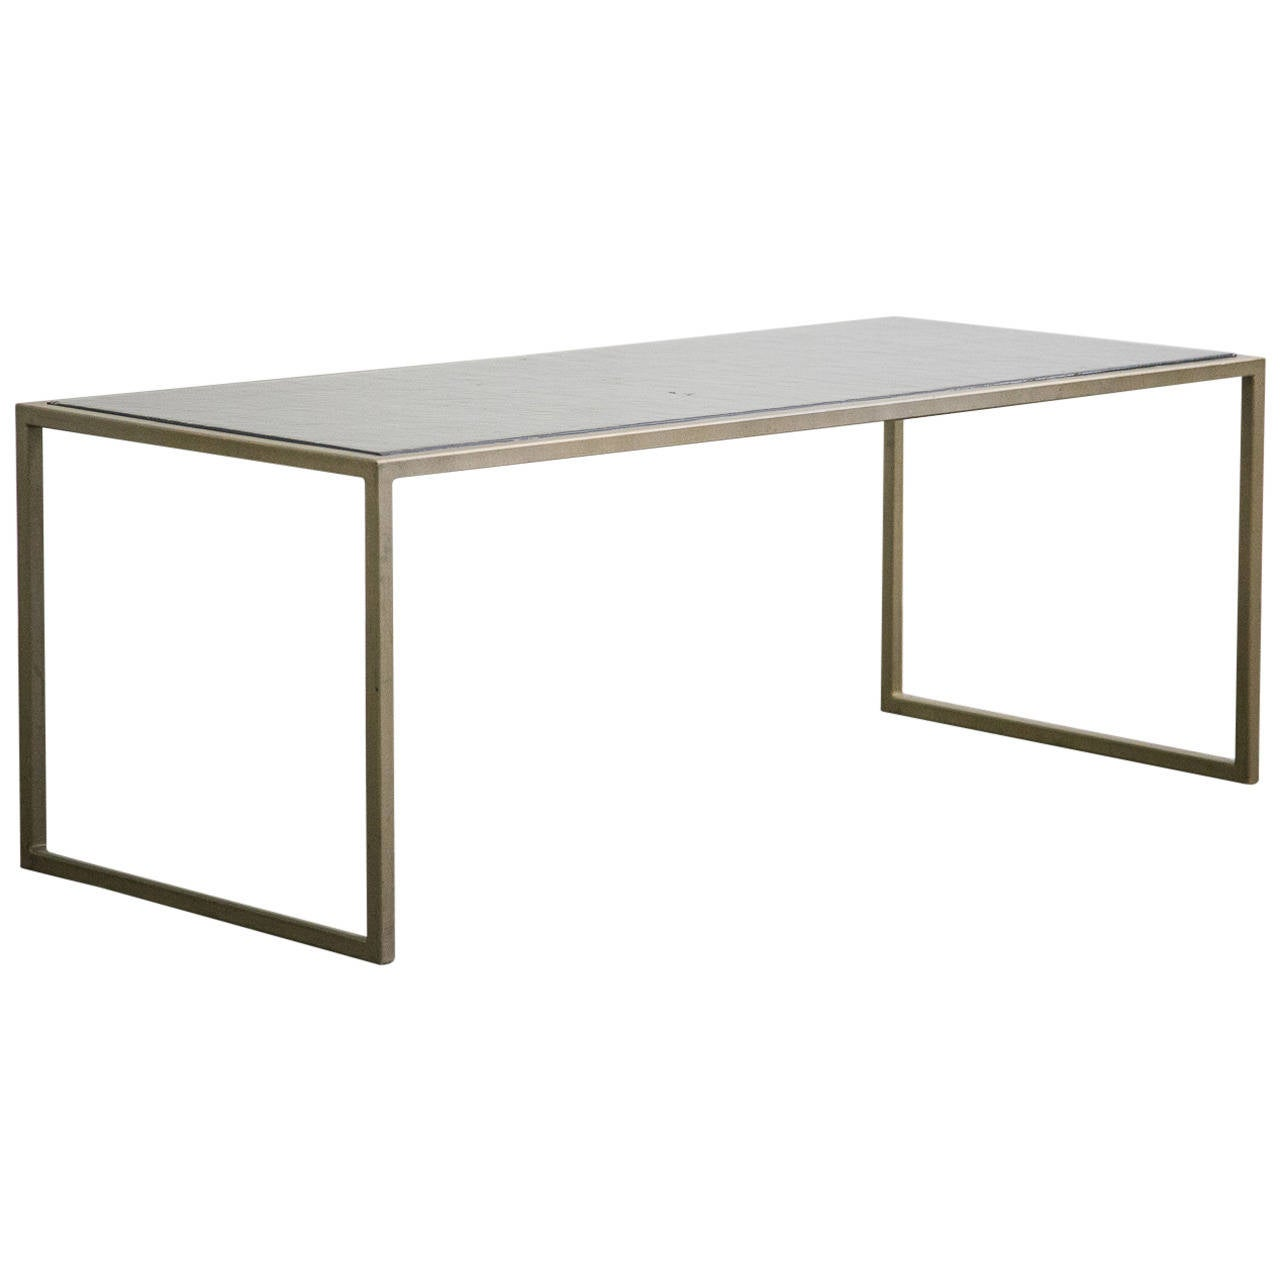 philippe starck designed coffee table paris circa 1985 for sale at 1stdibs